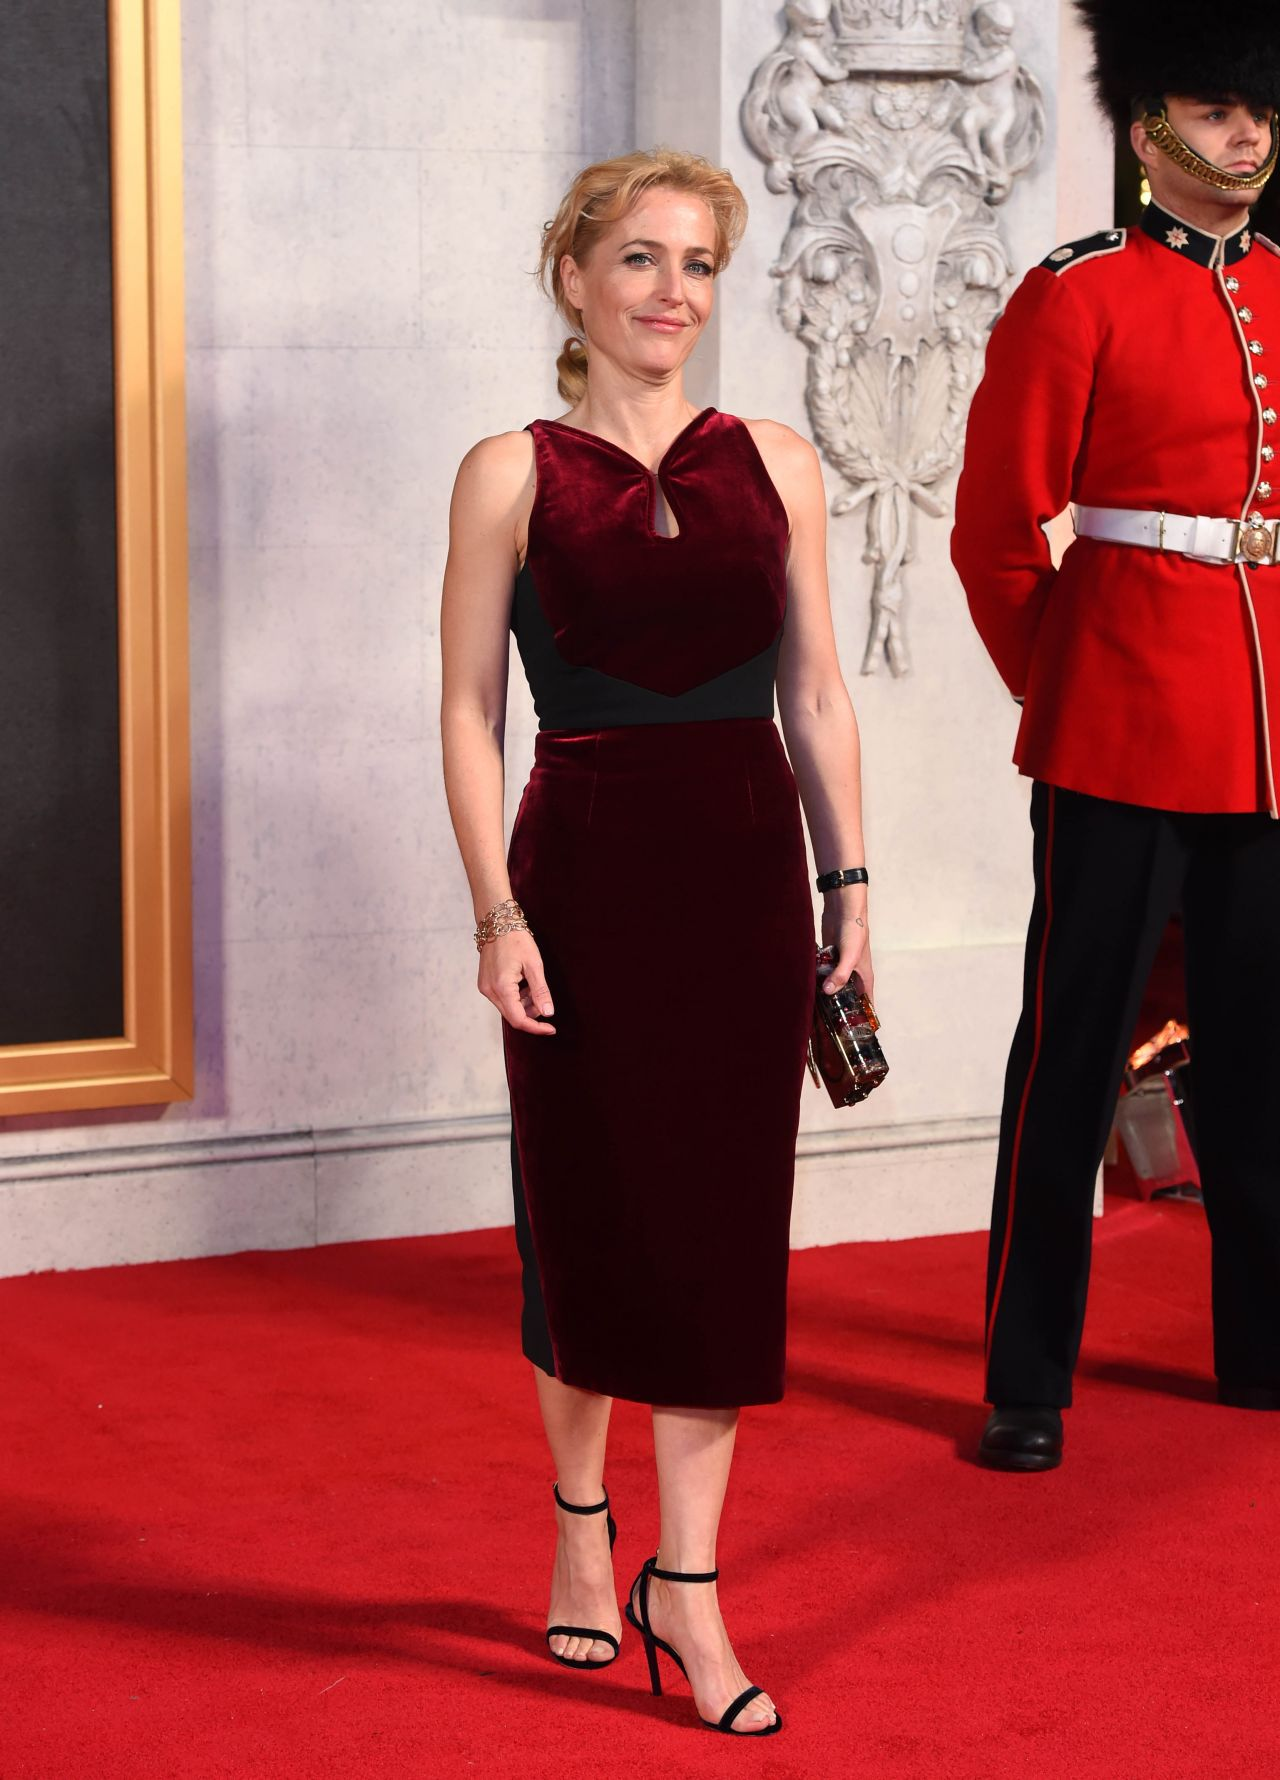 Gillian Anderson The Crown Tv Series Premiere In London on Red Carpet Reporter